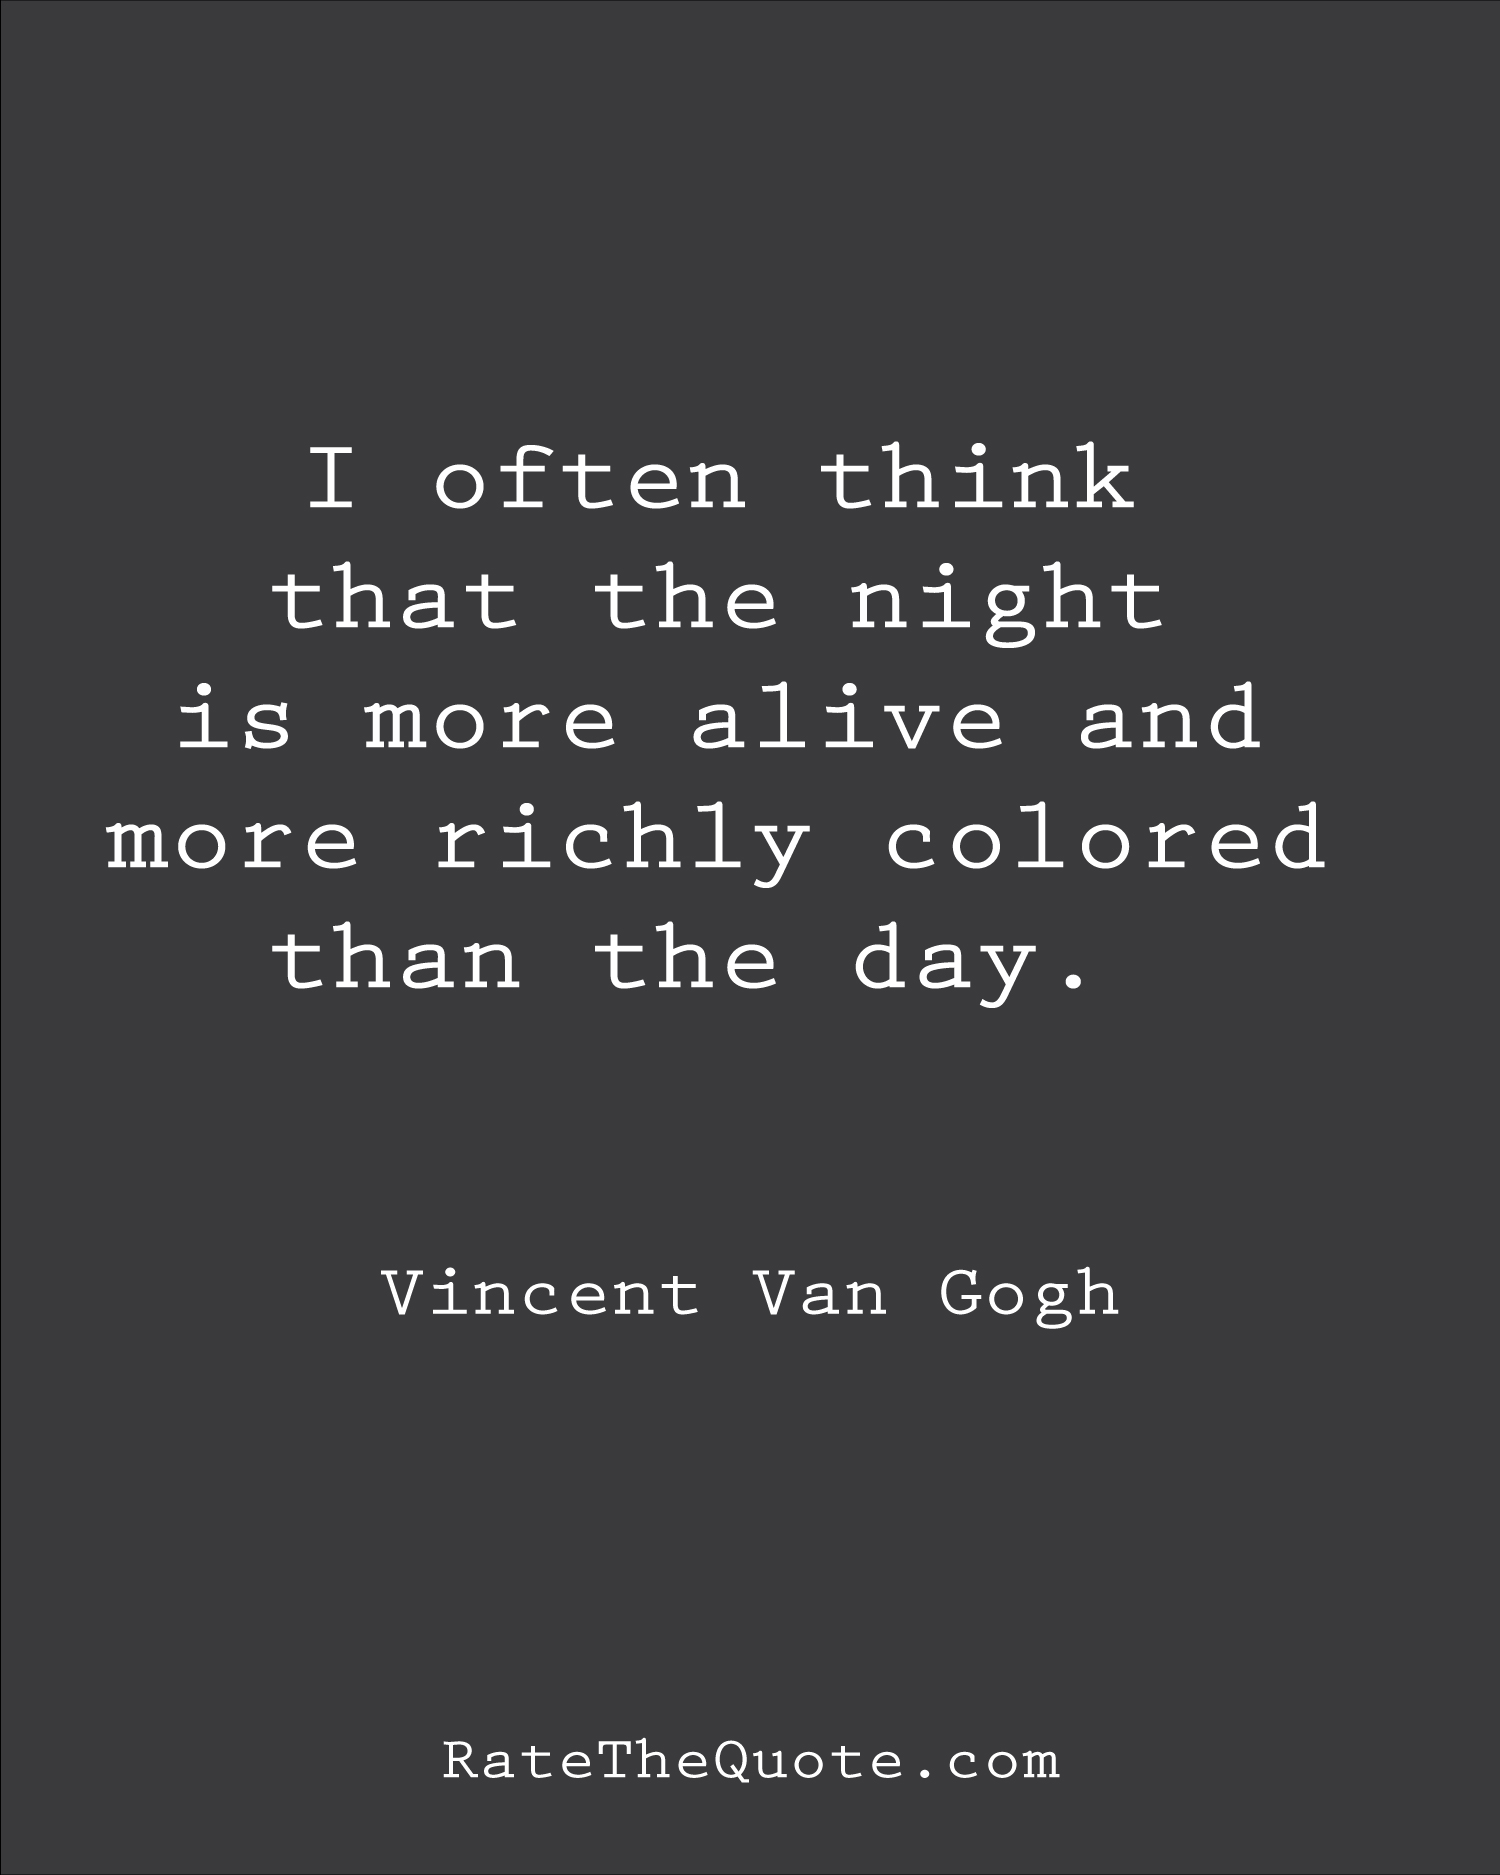 I often think that the night is more alive and more richly colored than the day. Vincent Van Gogh